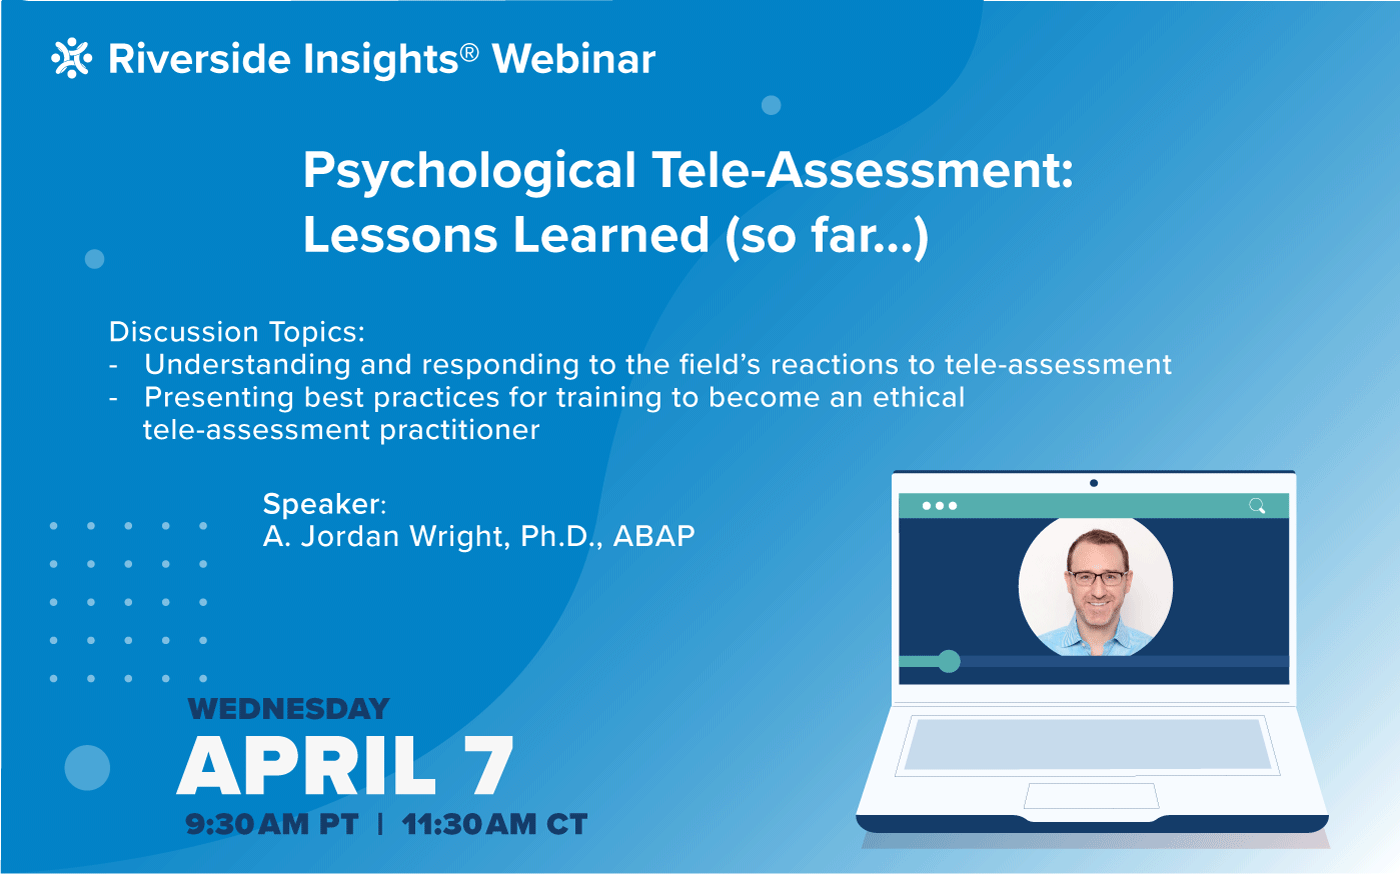 Psychological Tele-Assessment: Lessons Learned